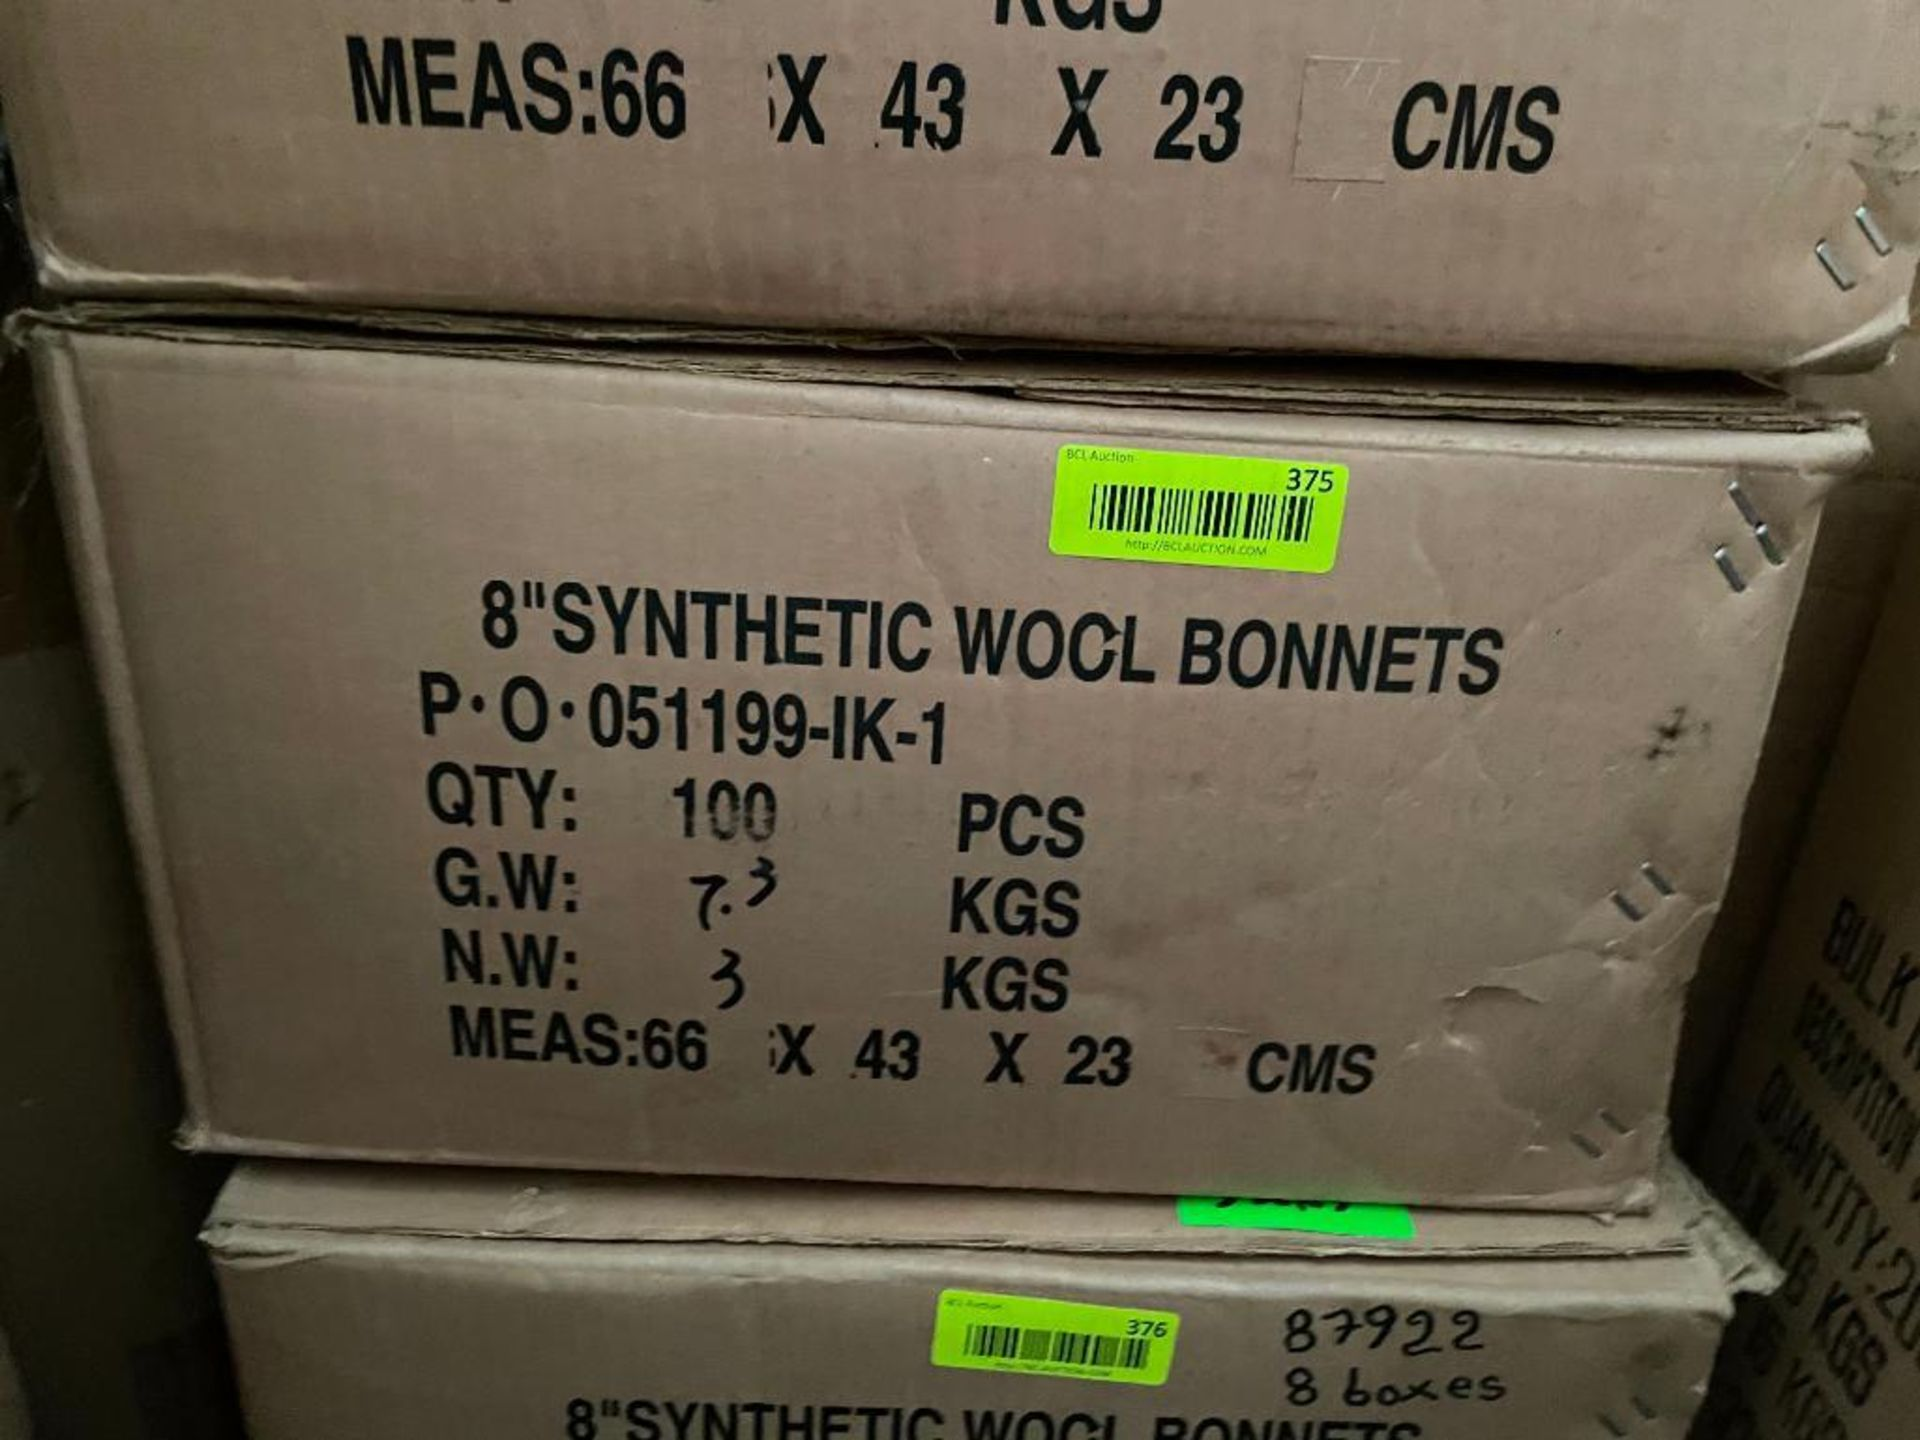 """100CT 8"""" SYNTHETIC WOOL BONNETS BRAND/MODEL EAZYPOWER 87922 ADDITIONAL INFO TOTAL LOT RETAIL PRICE: - Image 2 of 3"""